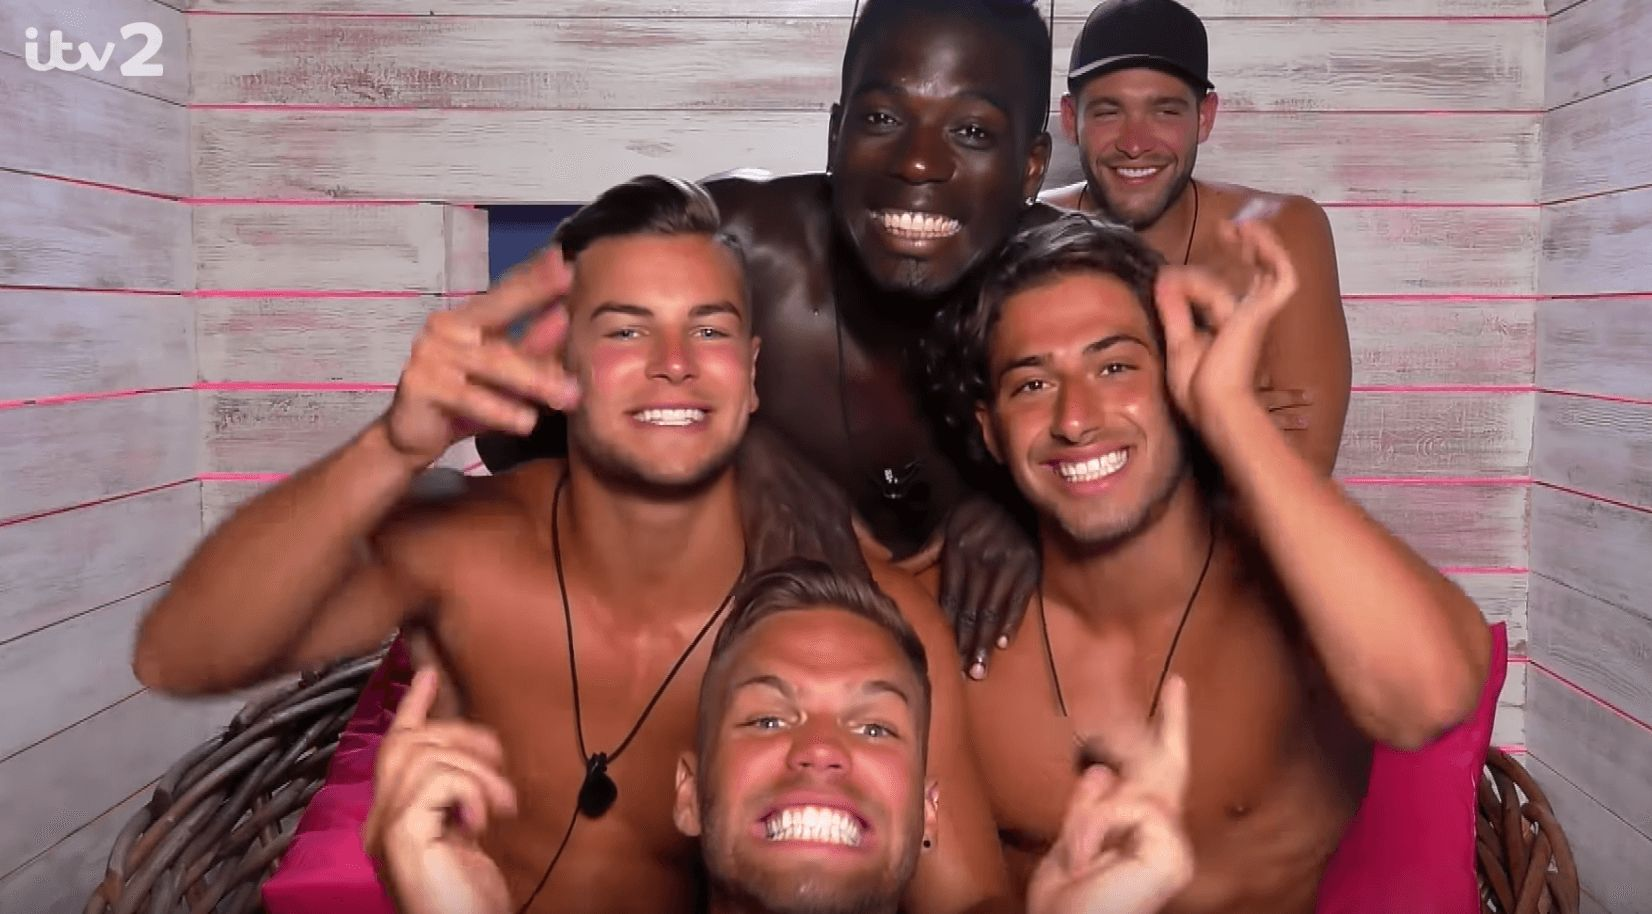 Image may contain: Love Island most shocking moments, Love Island, best bits, highlights, most controversial, series three, Clothing, Apparel, People, Party, Female, Selfie, Photo, Portrait, Photography, Laughing, Smile, Face, Human, Person